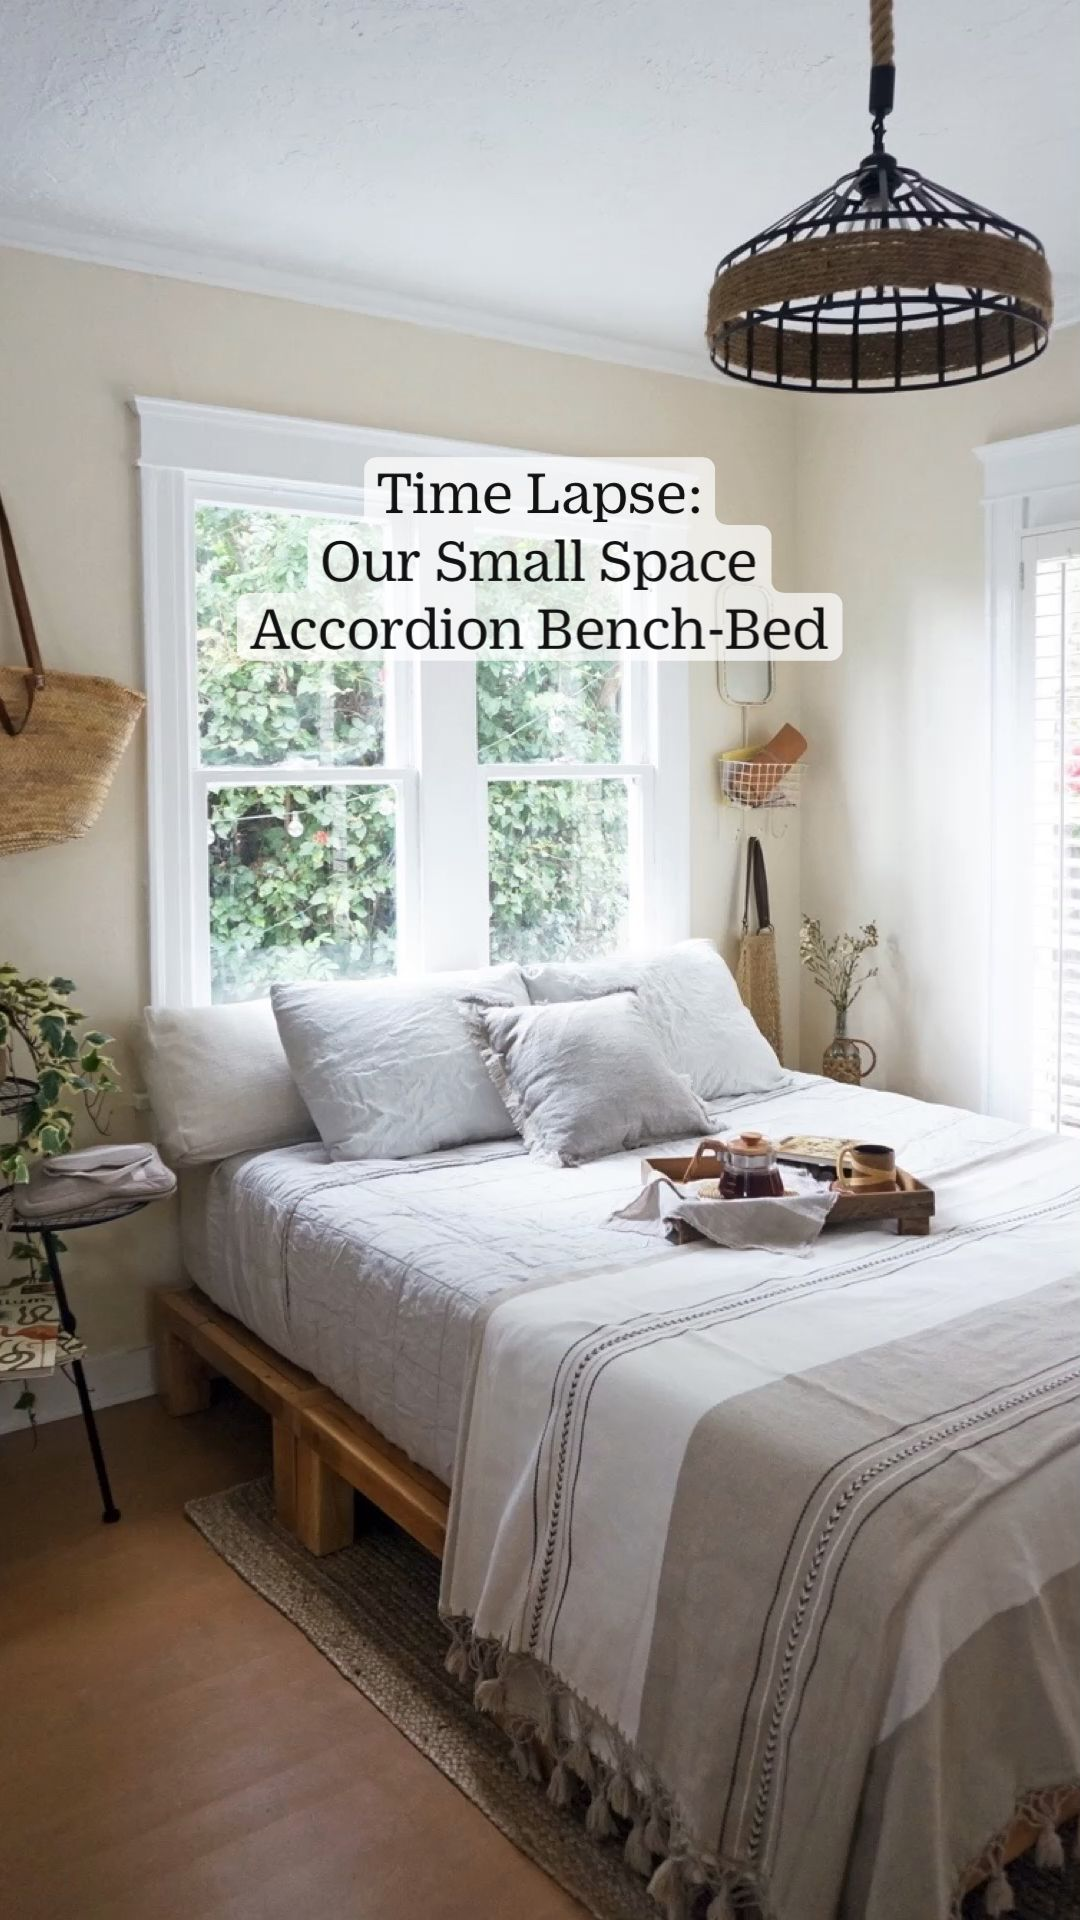 Time Lapse: Our Small Space Accordion Bench-Bed